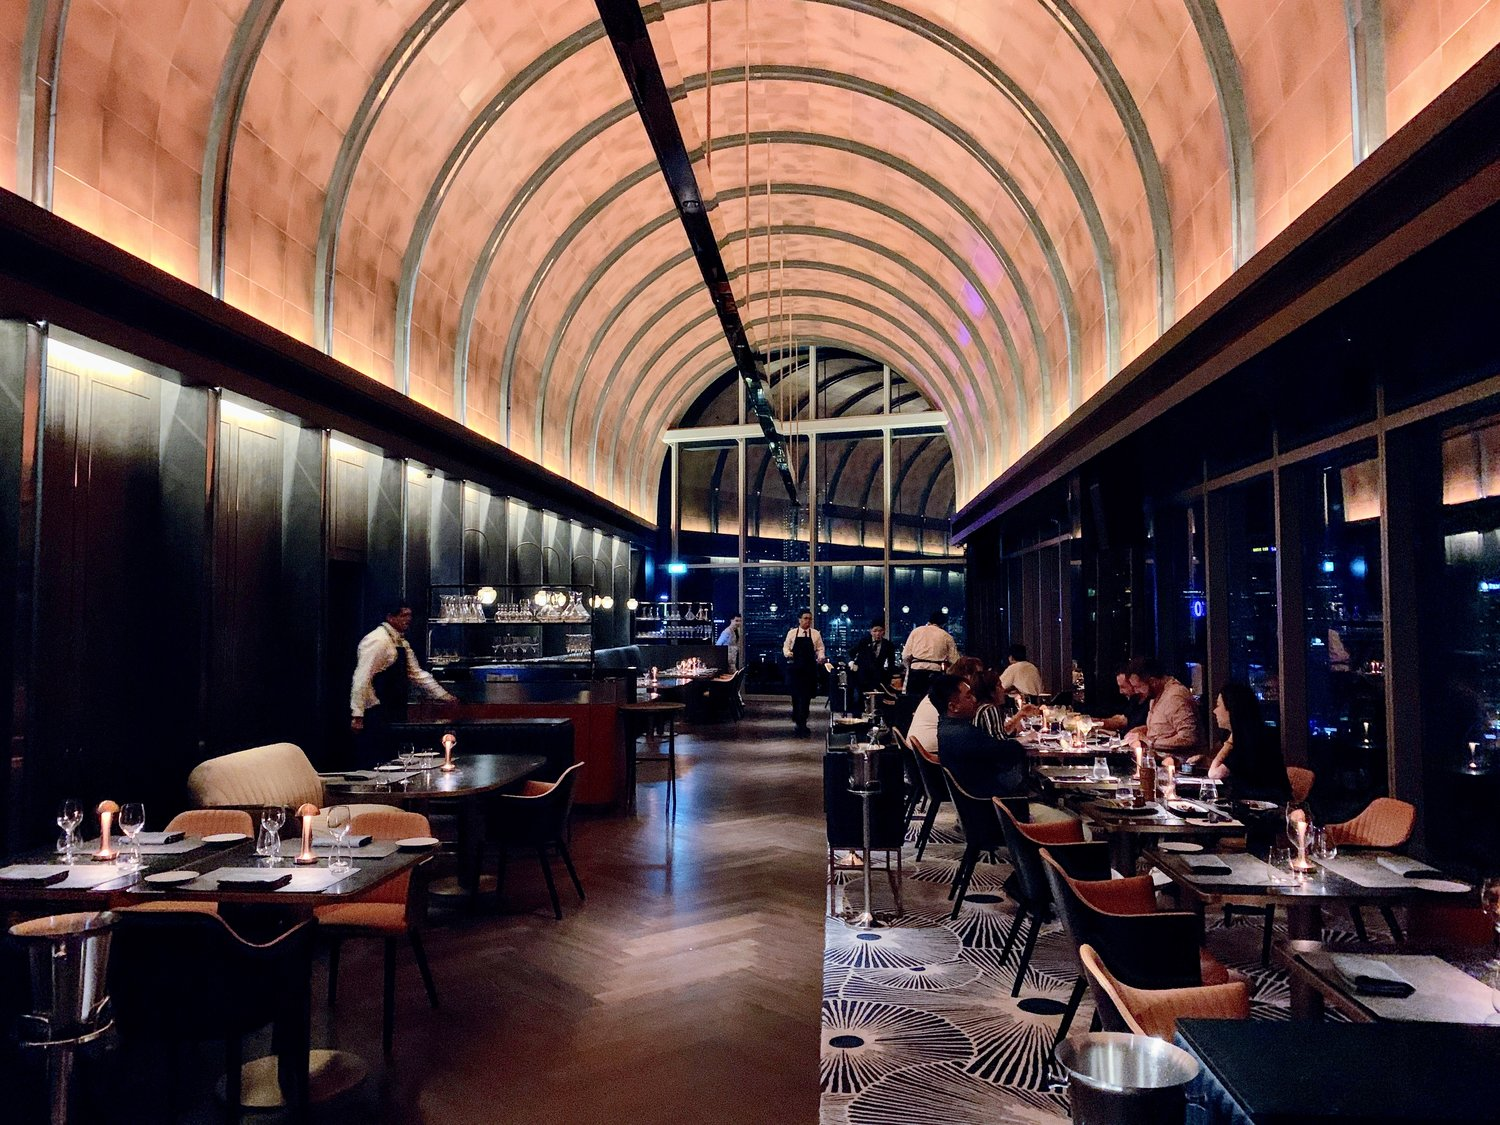 VUE Skybar & Grill: Rooftop Bar and Restaurant at OUE Singapore — HEY DEETS